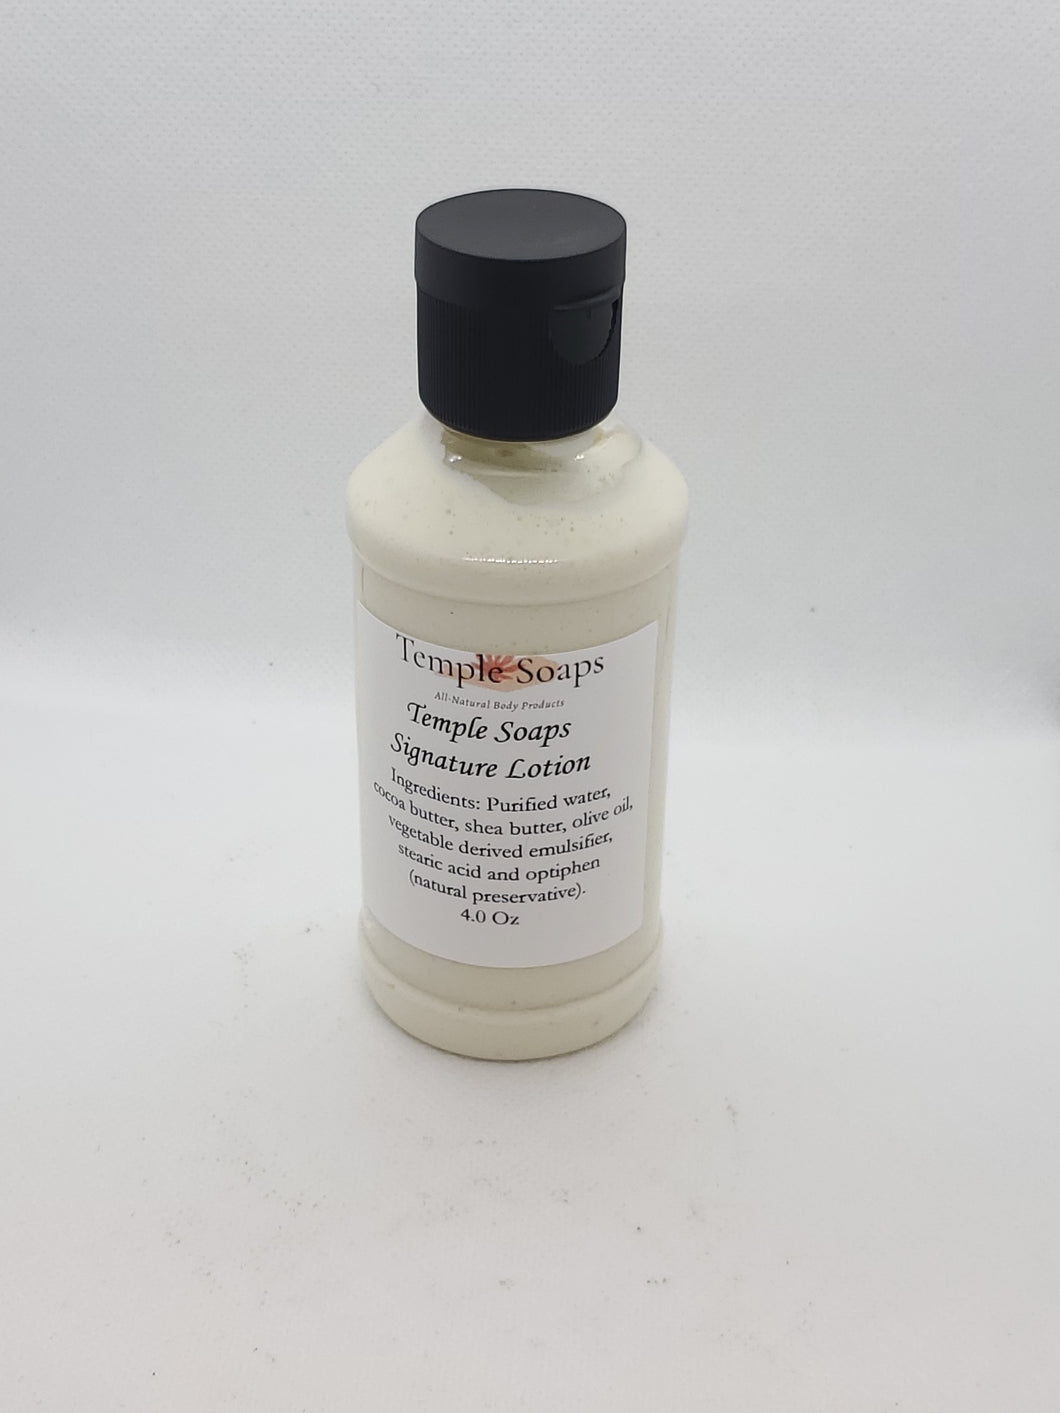 Temple Soaps Signature Body Cream